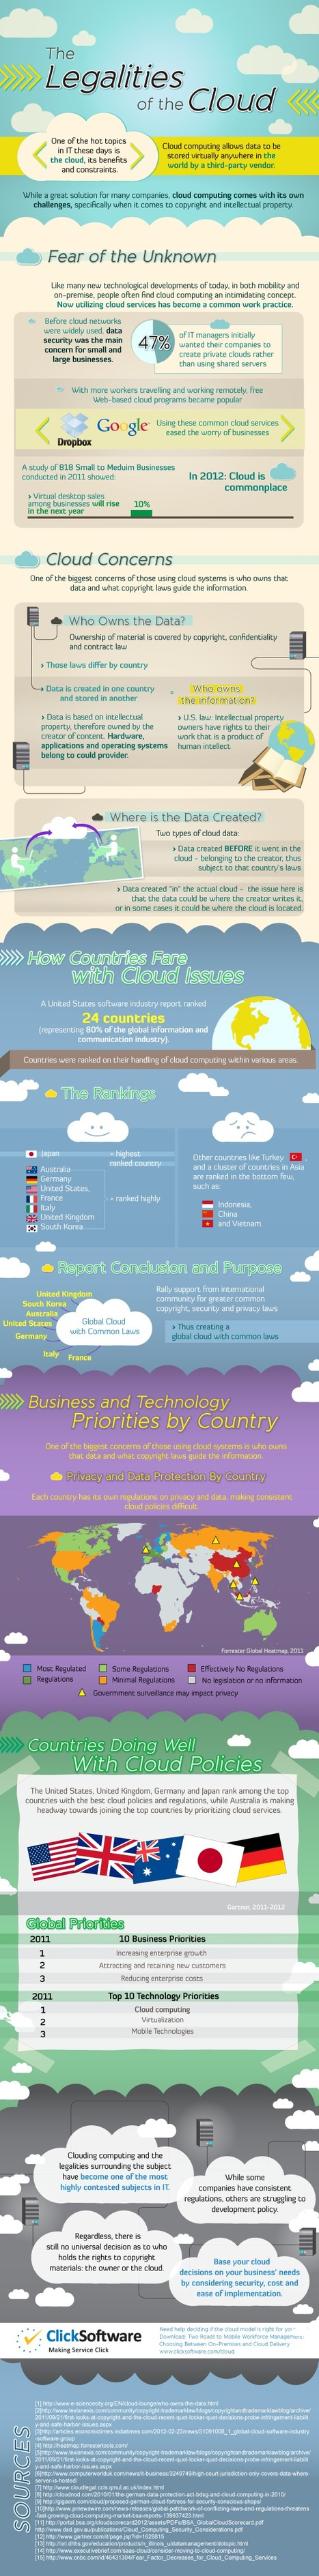 INFOGRAPHIC: The Legalities Of the Cloud | Human Capital Management Technologies | Scoop.it